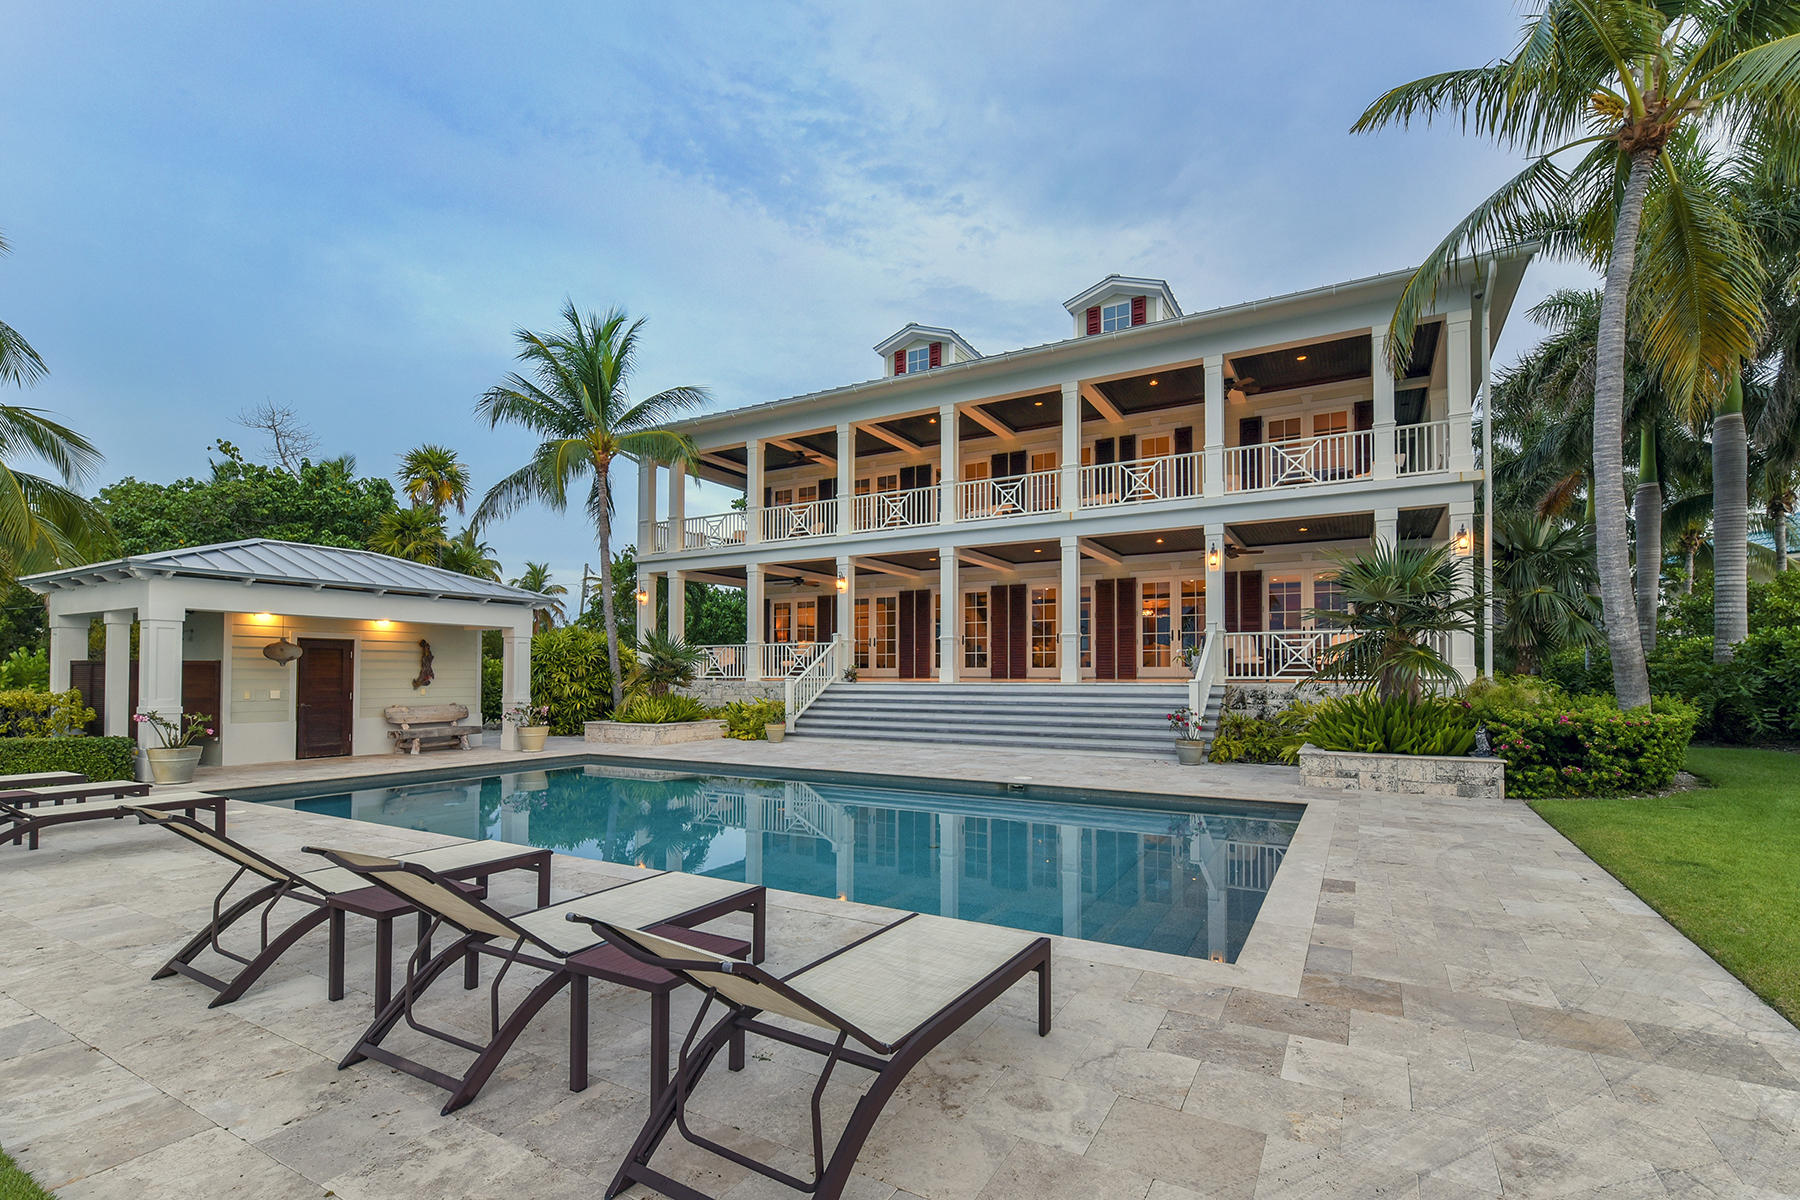 Single Family Homes for Active at 75300 Overseas Highway, Islamorada, FL 75300 Overseas Highway Islamorada, Florida 33036 United States